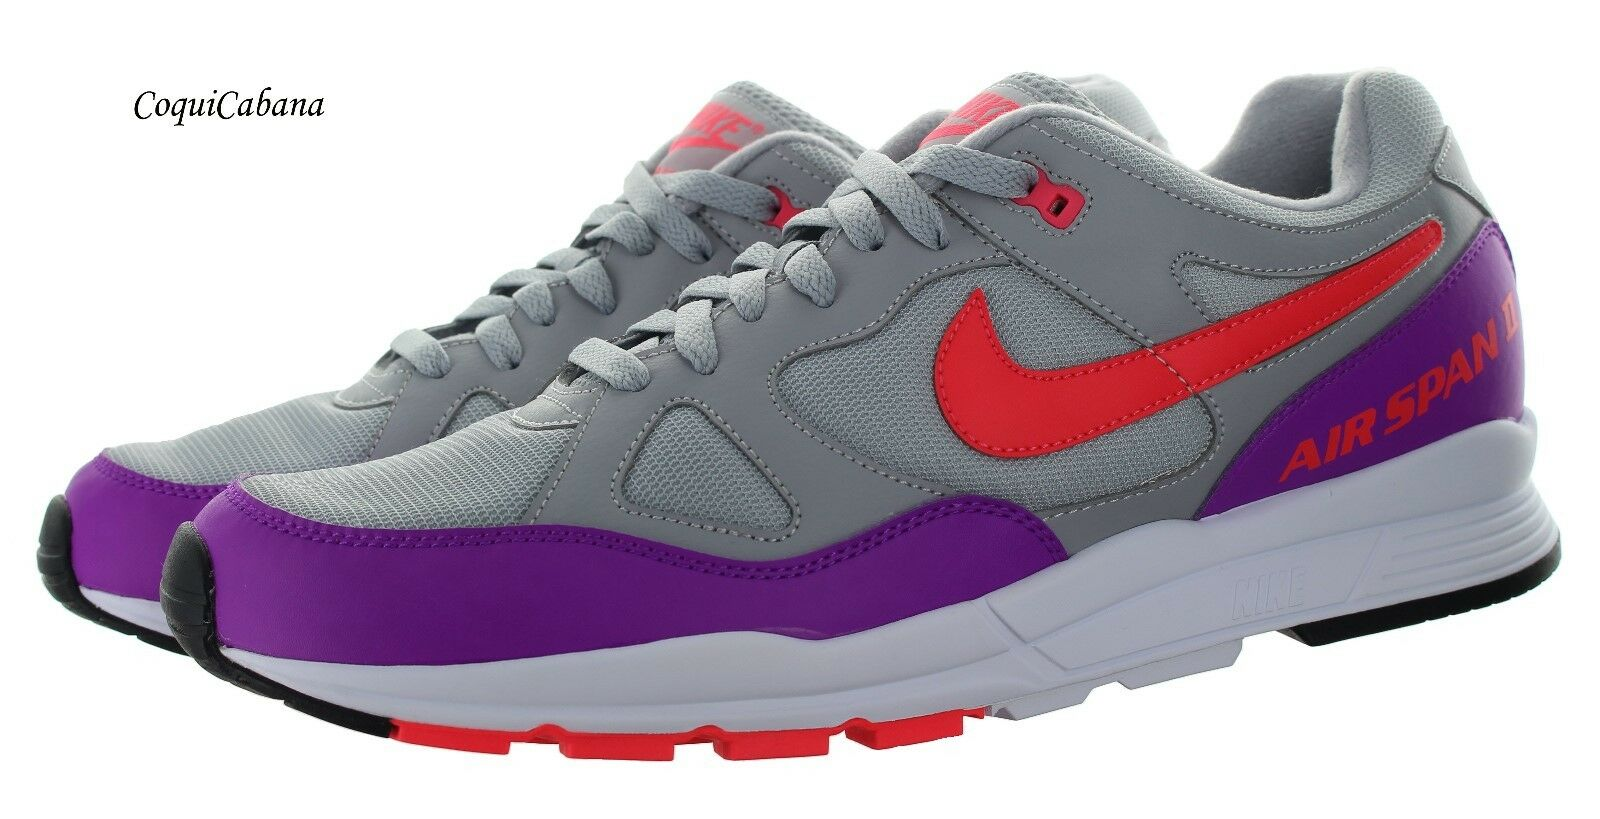 buy online 44a32 d163c Nike Men s AIR II Grey - Training shoes Size 14 New Purple SPAN nqxzsw6189-Men s  Athletic Shoes